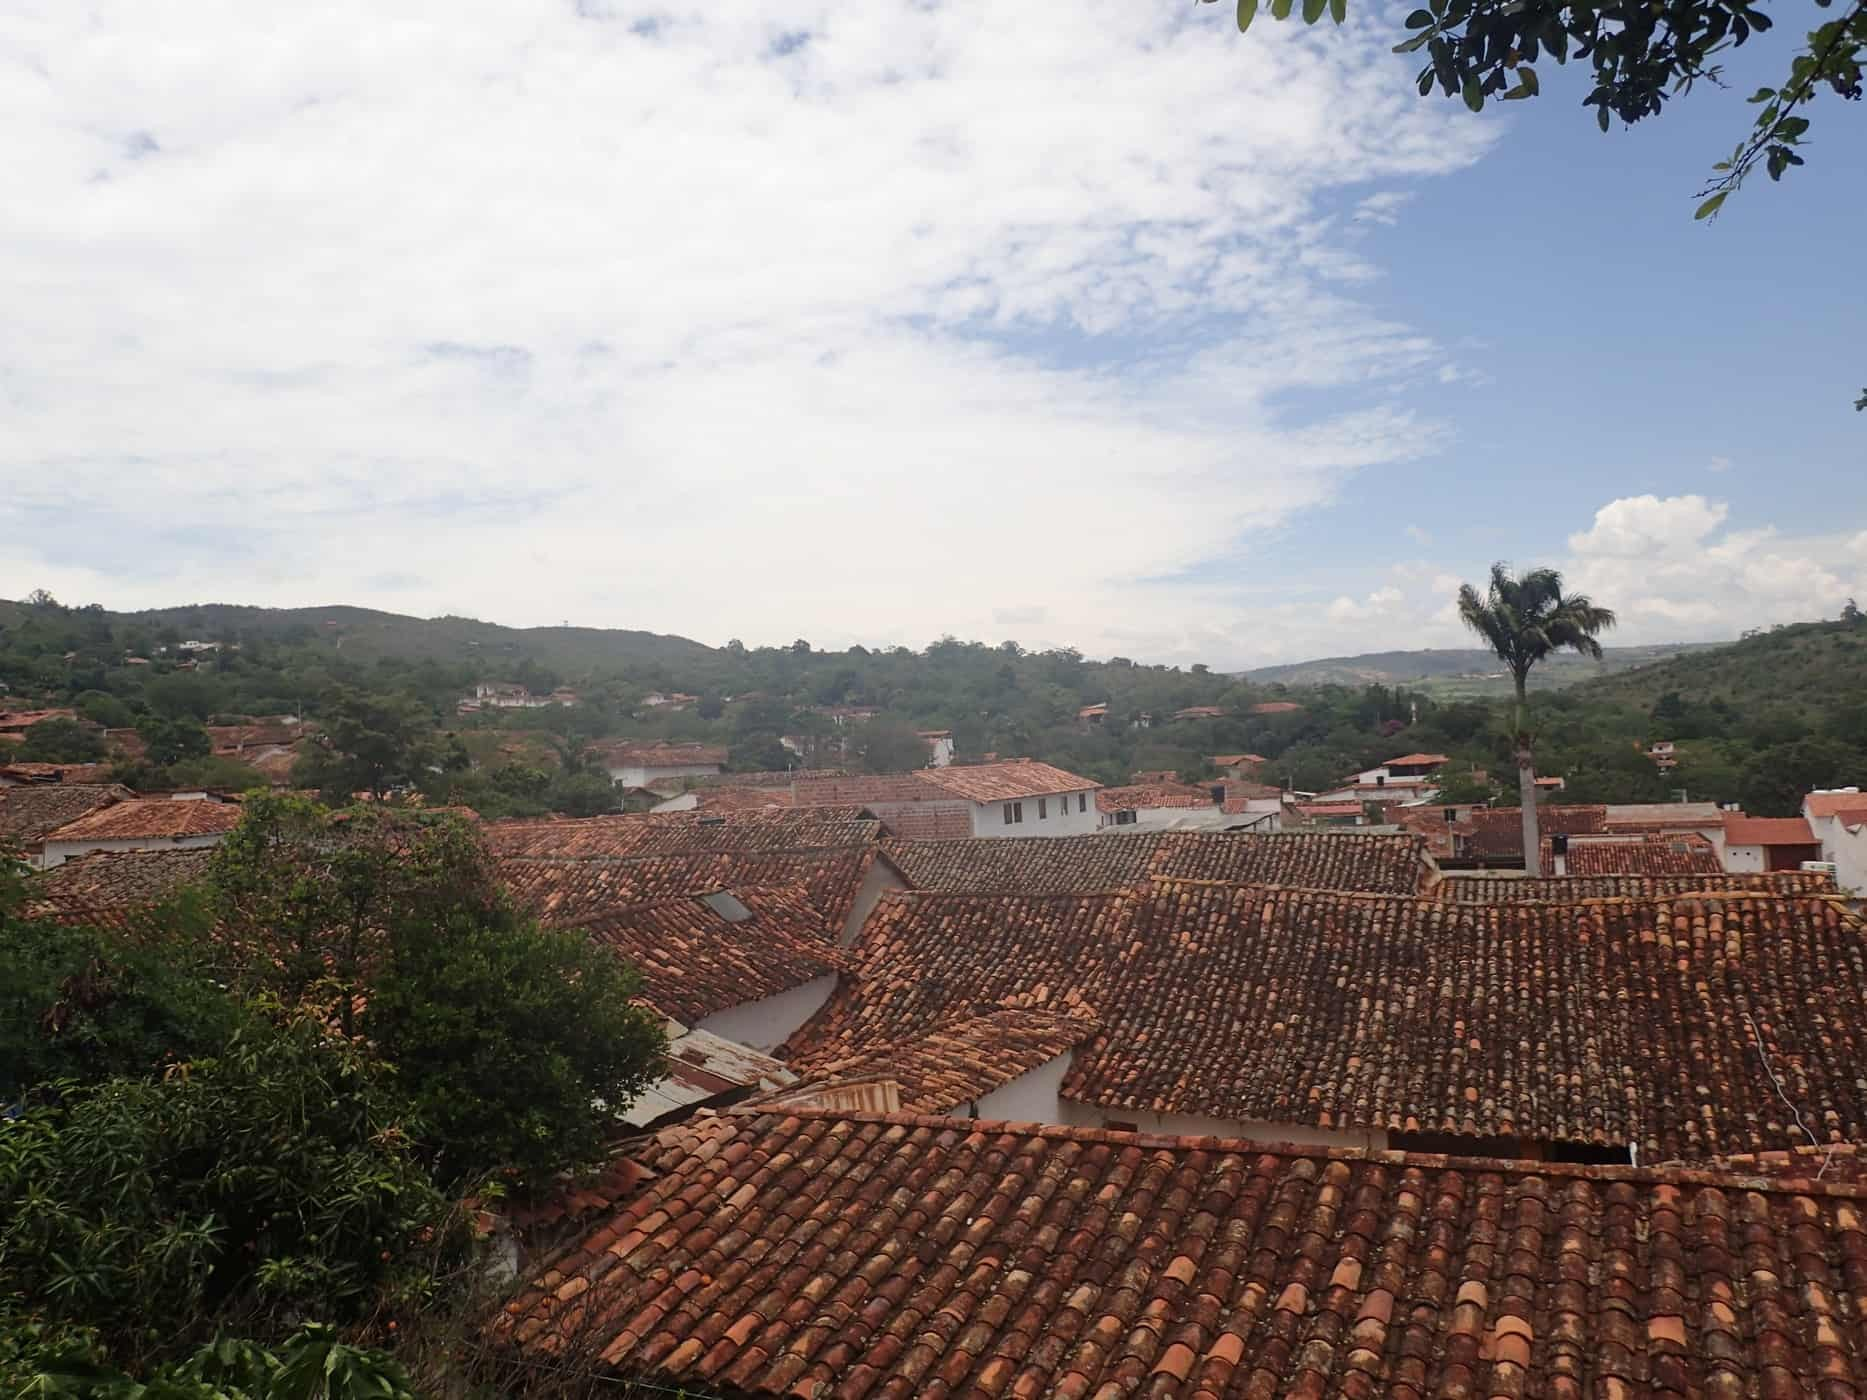 A view over the rooftops from Tinto Hostel in Barichara, Colombia.